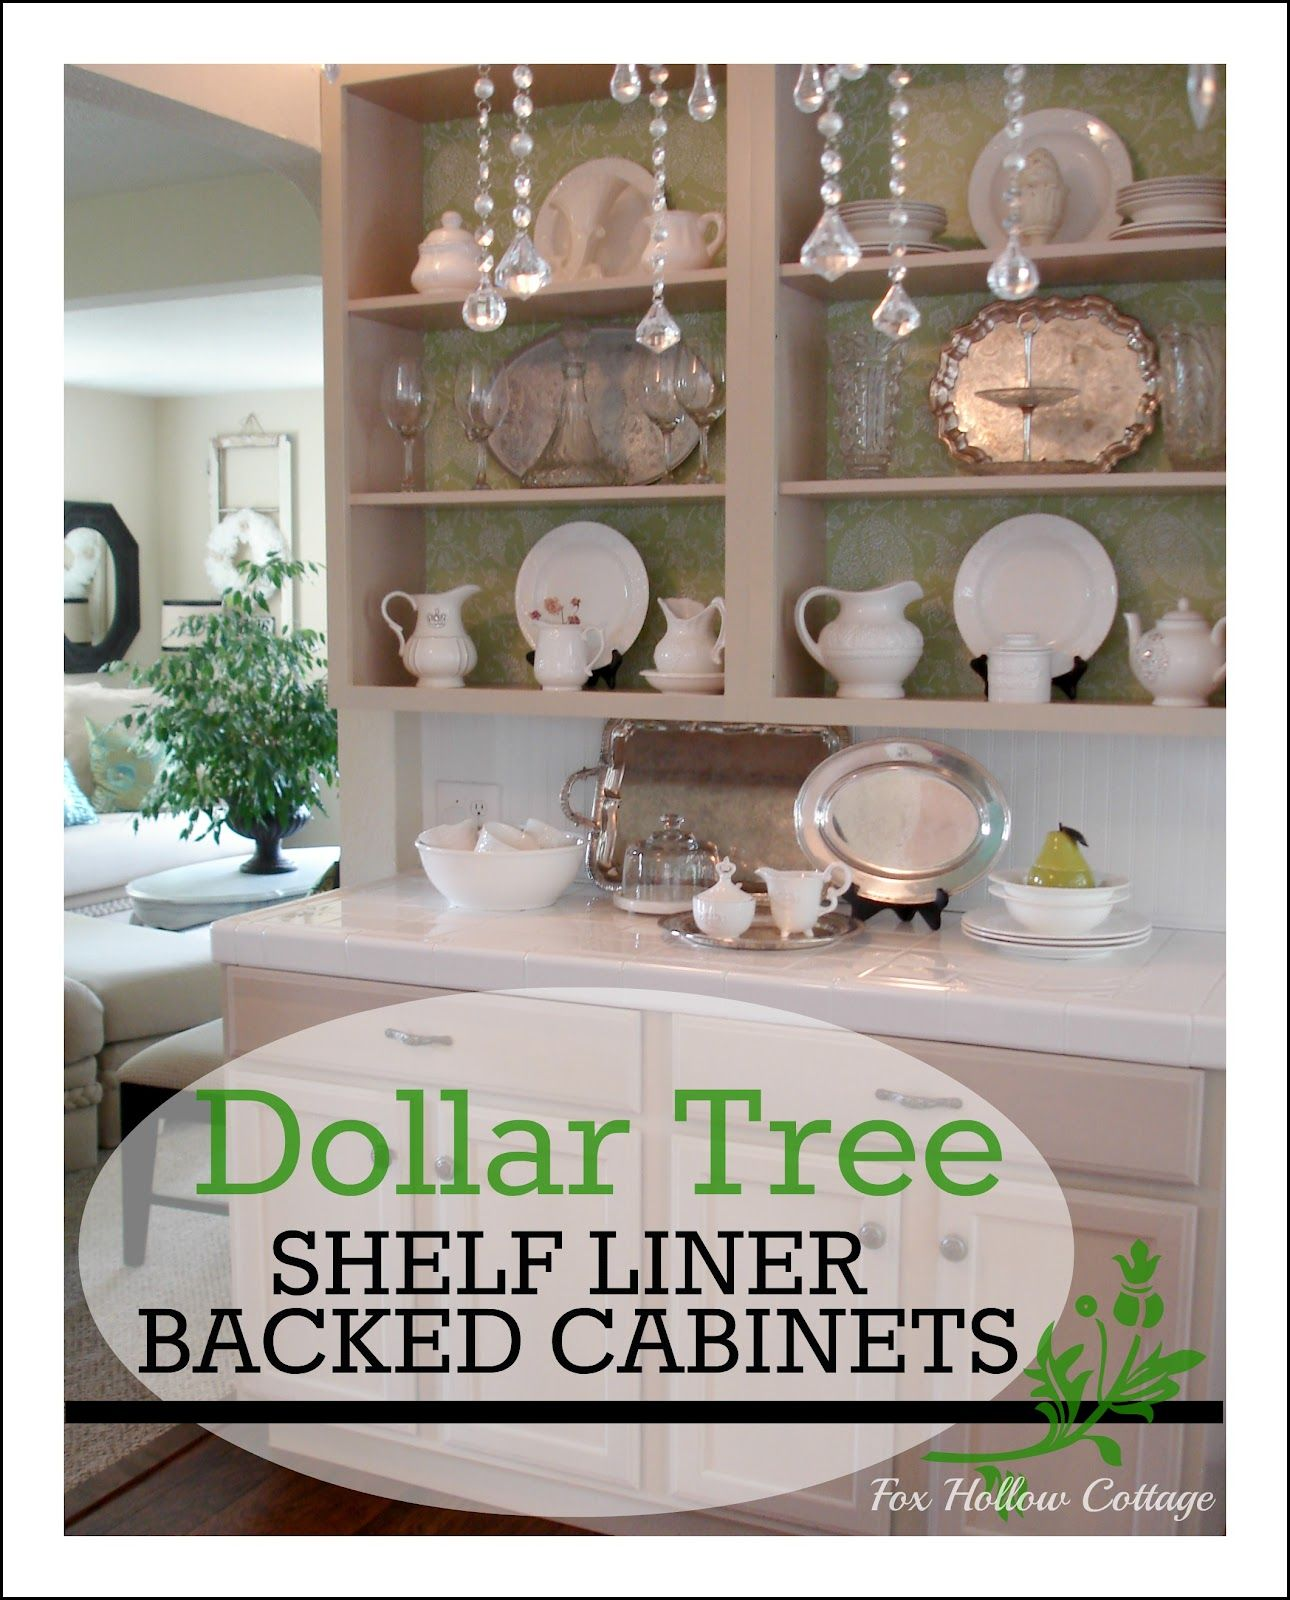 Gentil Fox Hollow Cottage: $6.00 For The Shelf Liner Paper Used On Back Wall Of  Cabinets